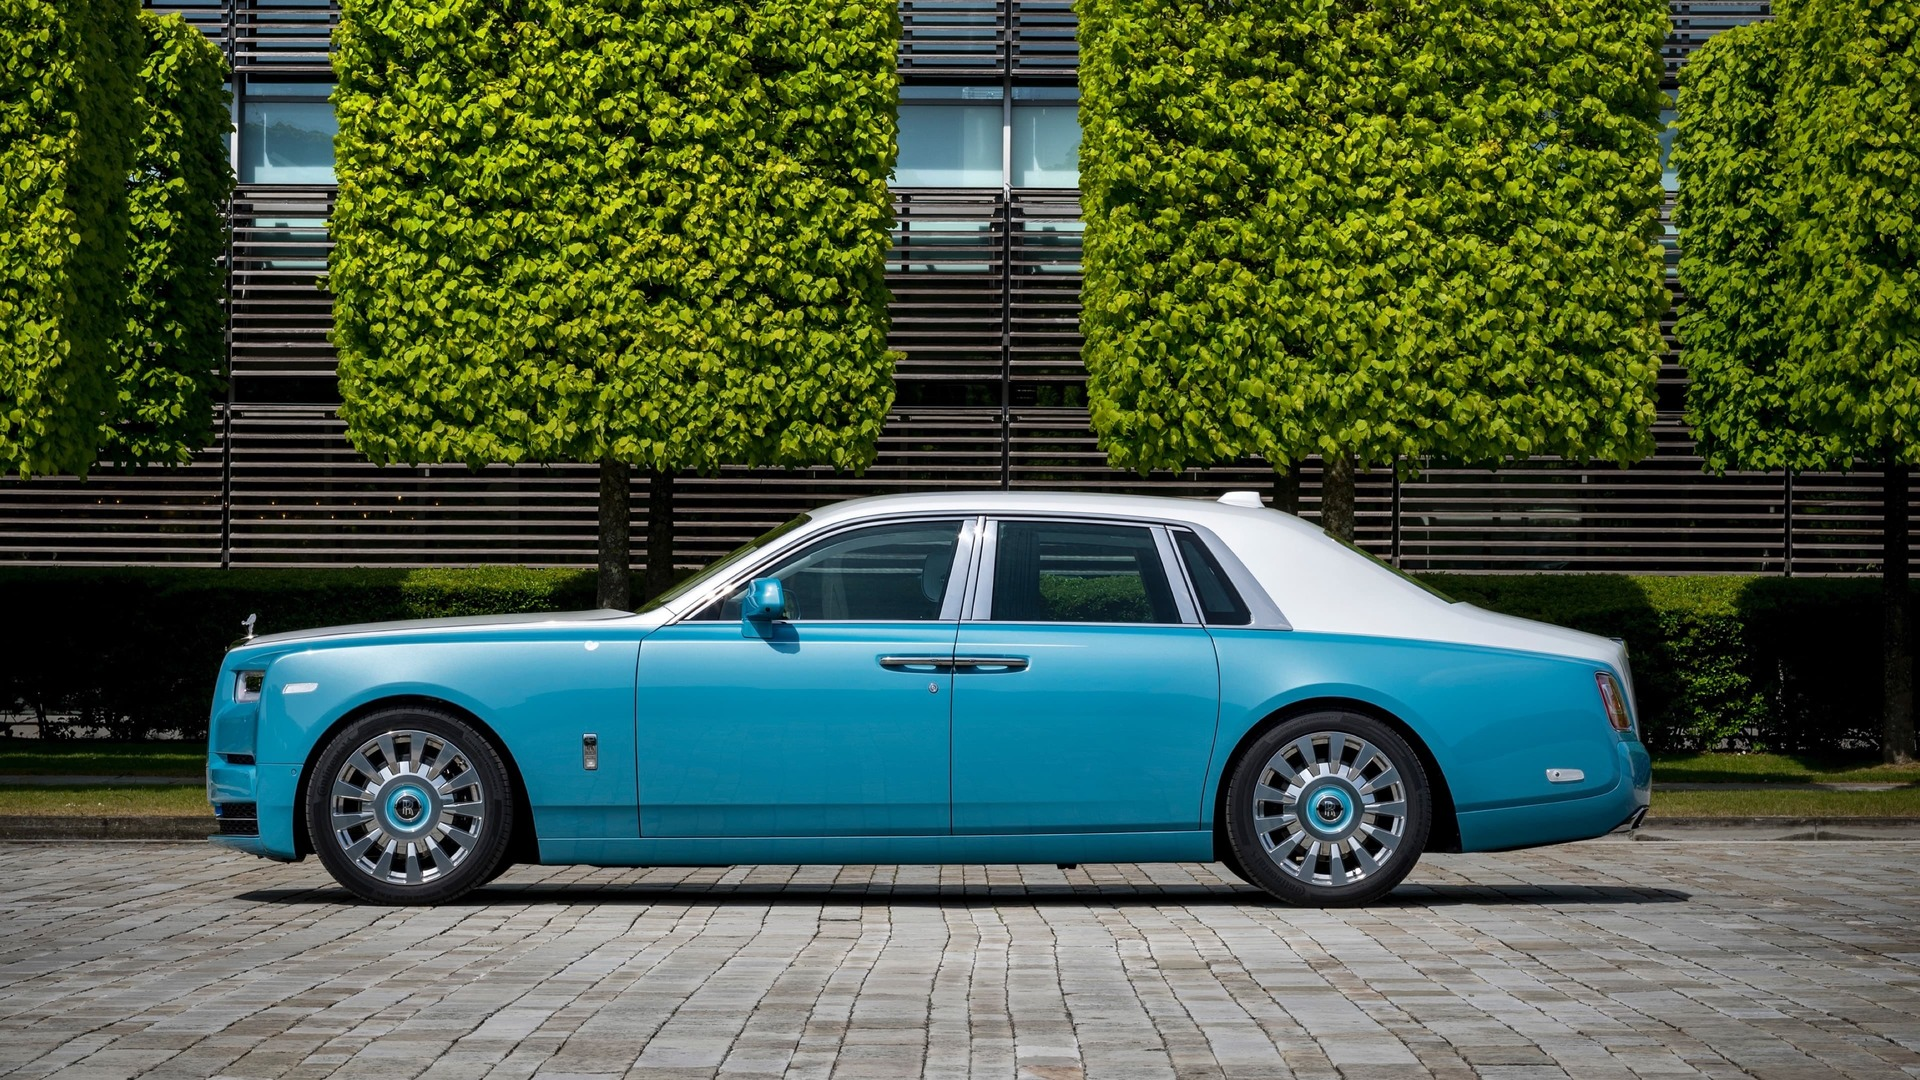 Side view of Turchese & Andalusian Rolls-Royce Phantom standard wheelbase